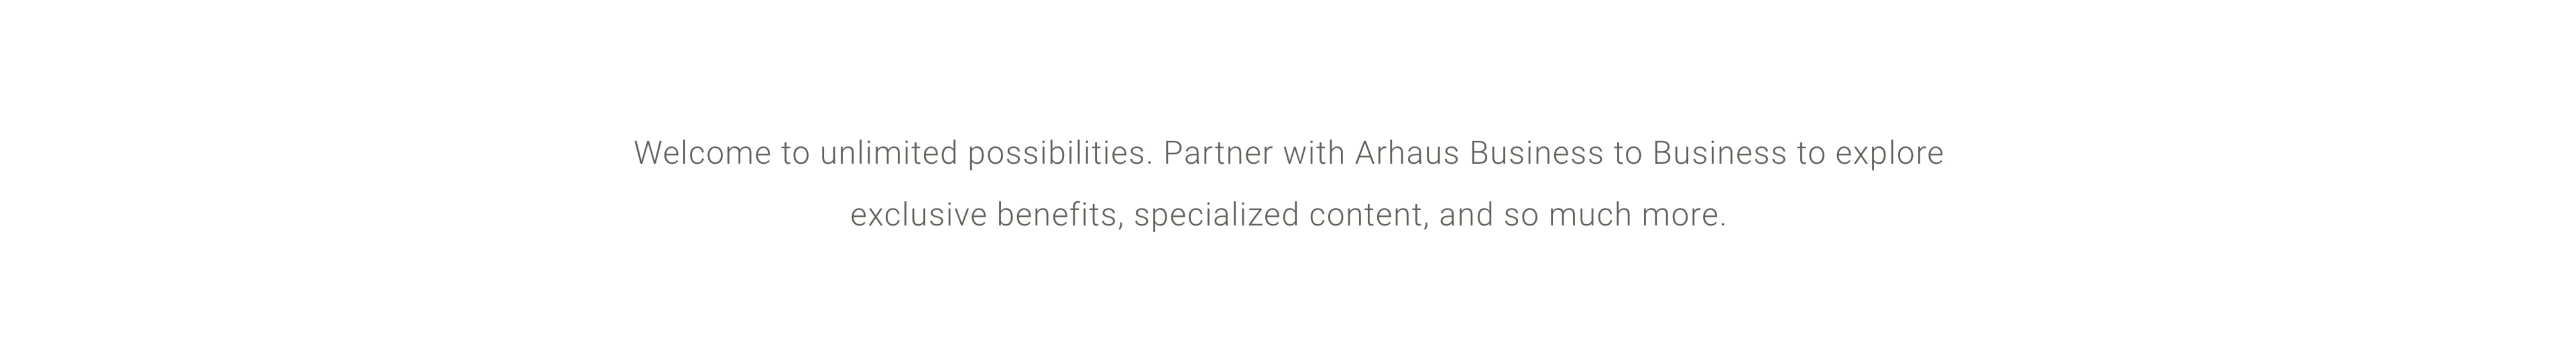 Partner with Arhaus Business to Business